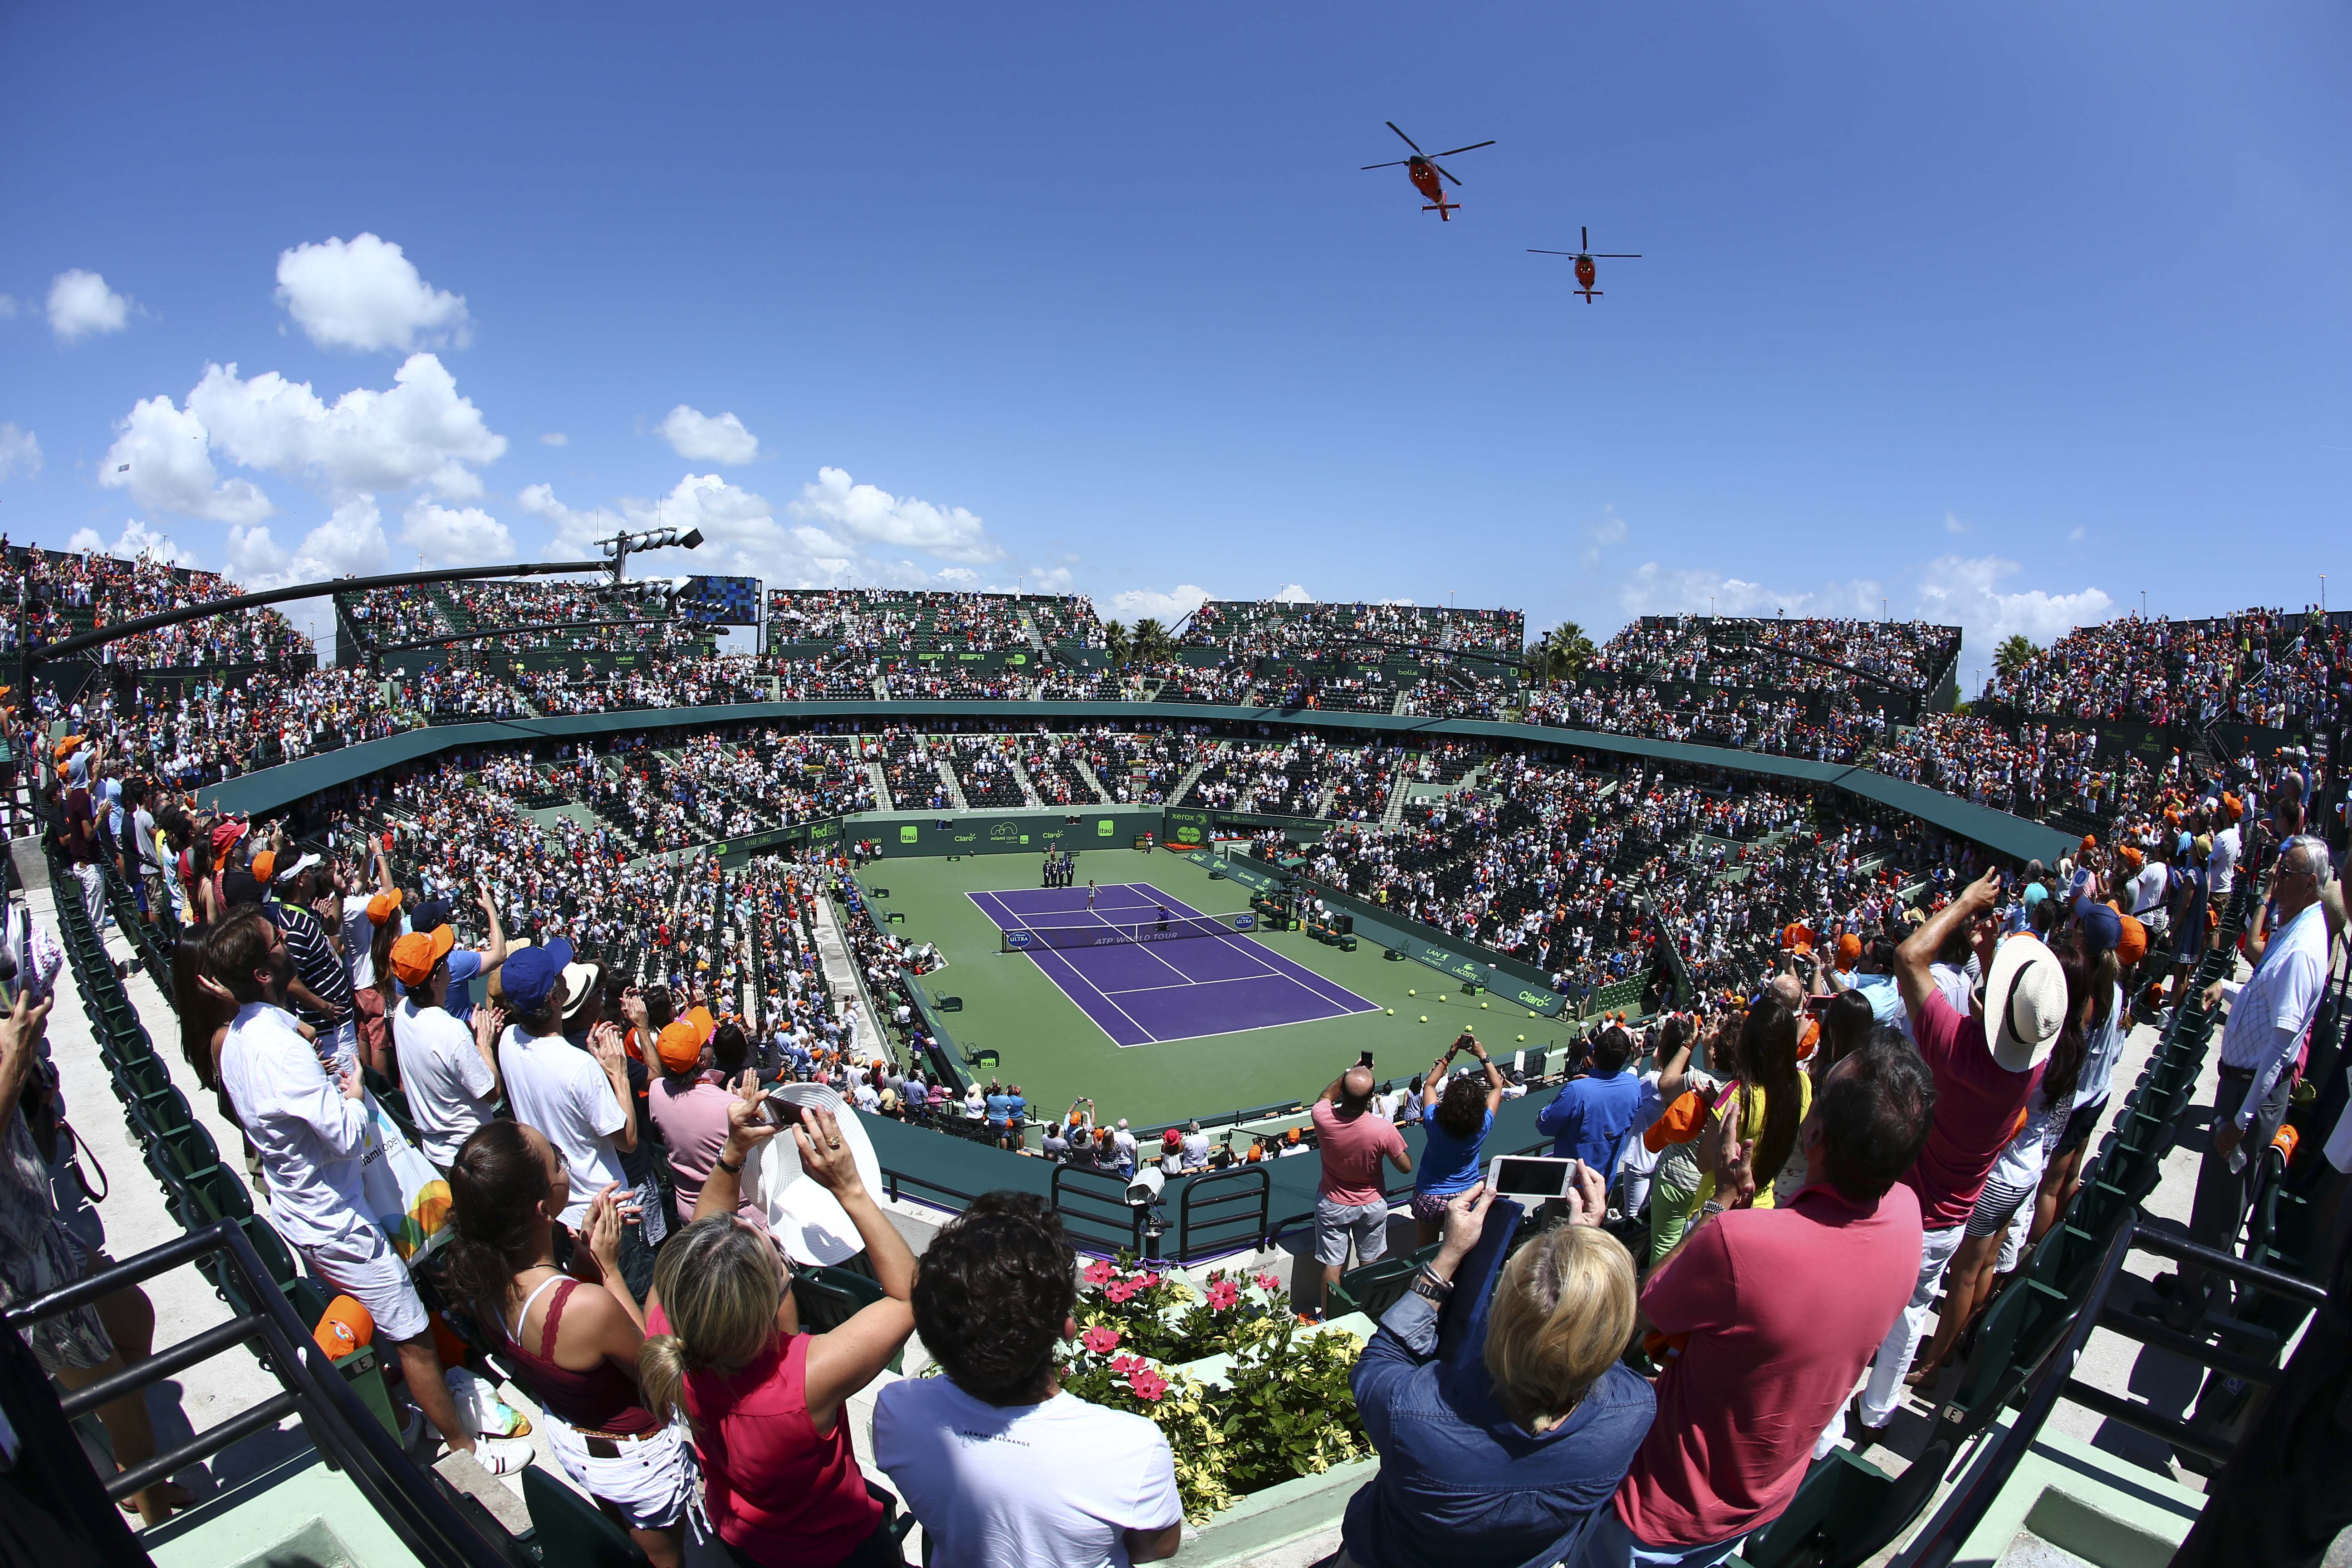 U.S. Coast Guard helicopters fly over the Stadium Court before a match between Novak Djokovic, of Serbia, and Andy Murray, of Great Britain, at the men's final match of the Miami Open tennis tournament Sunday, April 5, 2015, in Key Biscayne, Fla. (AP Phot